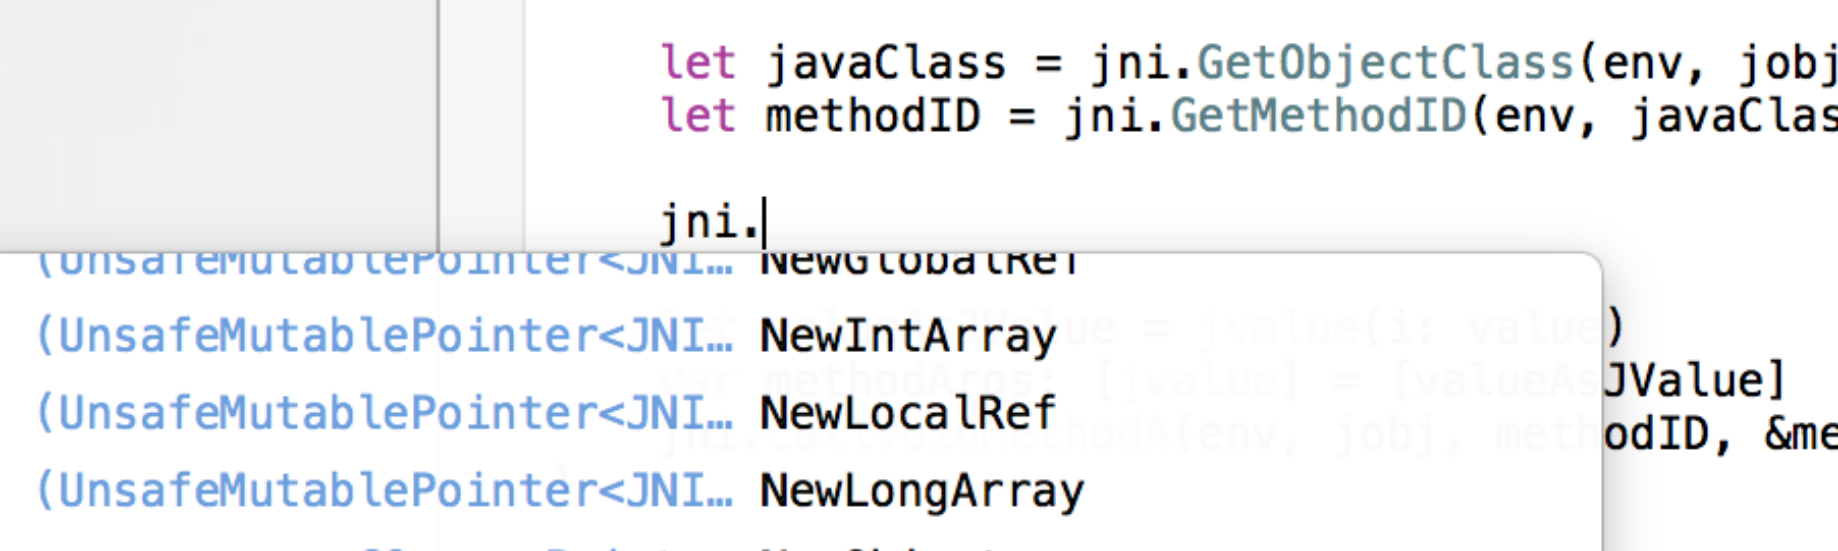 Using JNI in Swift to put an app into the Android Play Store